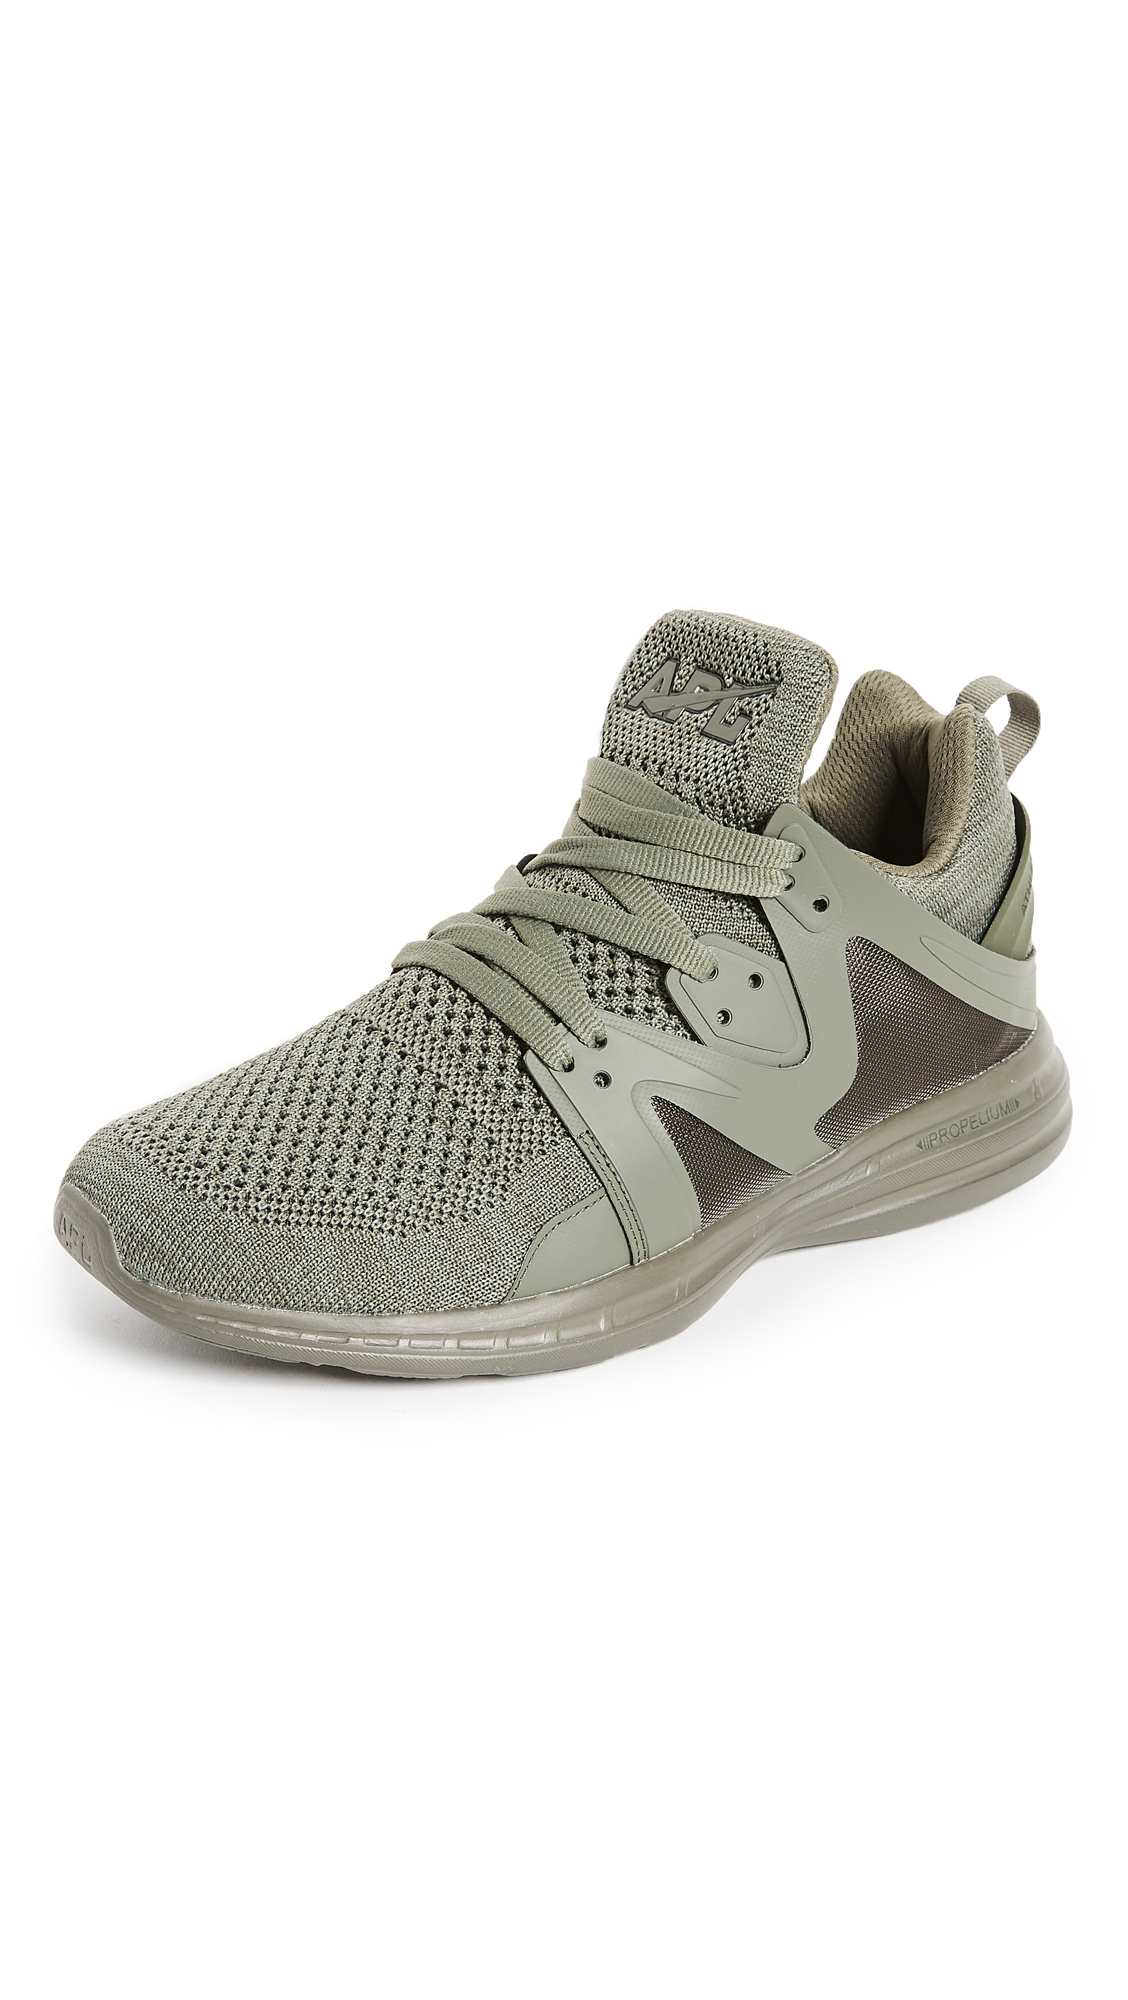 57c85eb48530 Apl Athletic Propulsion Labs Ascend Sneakers In Fatigue